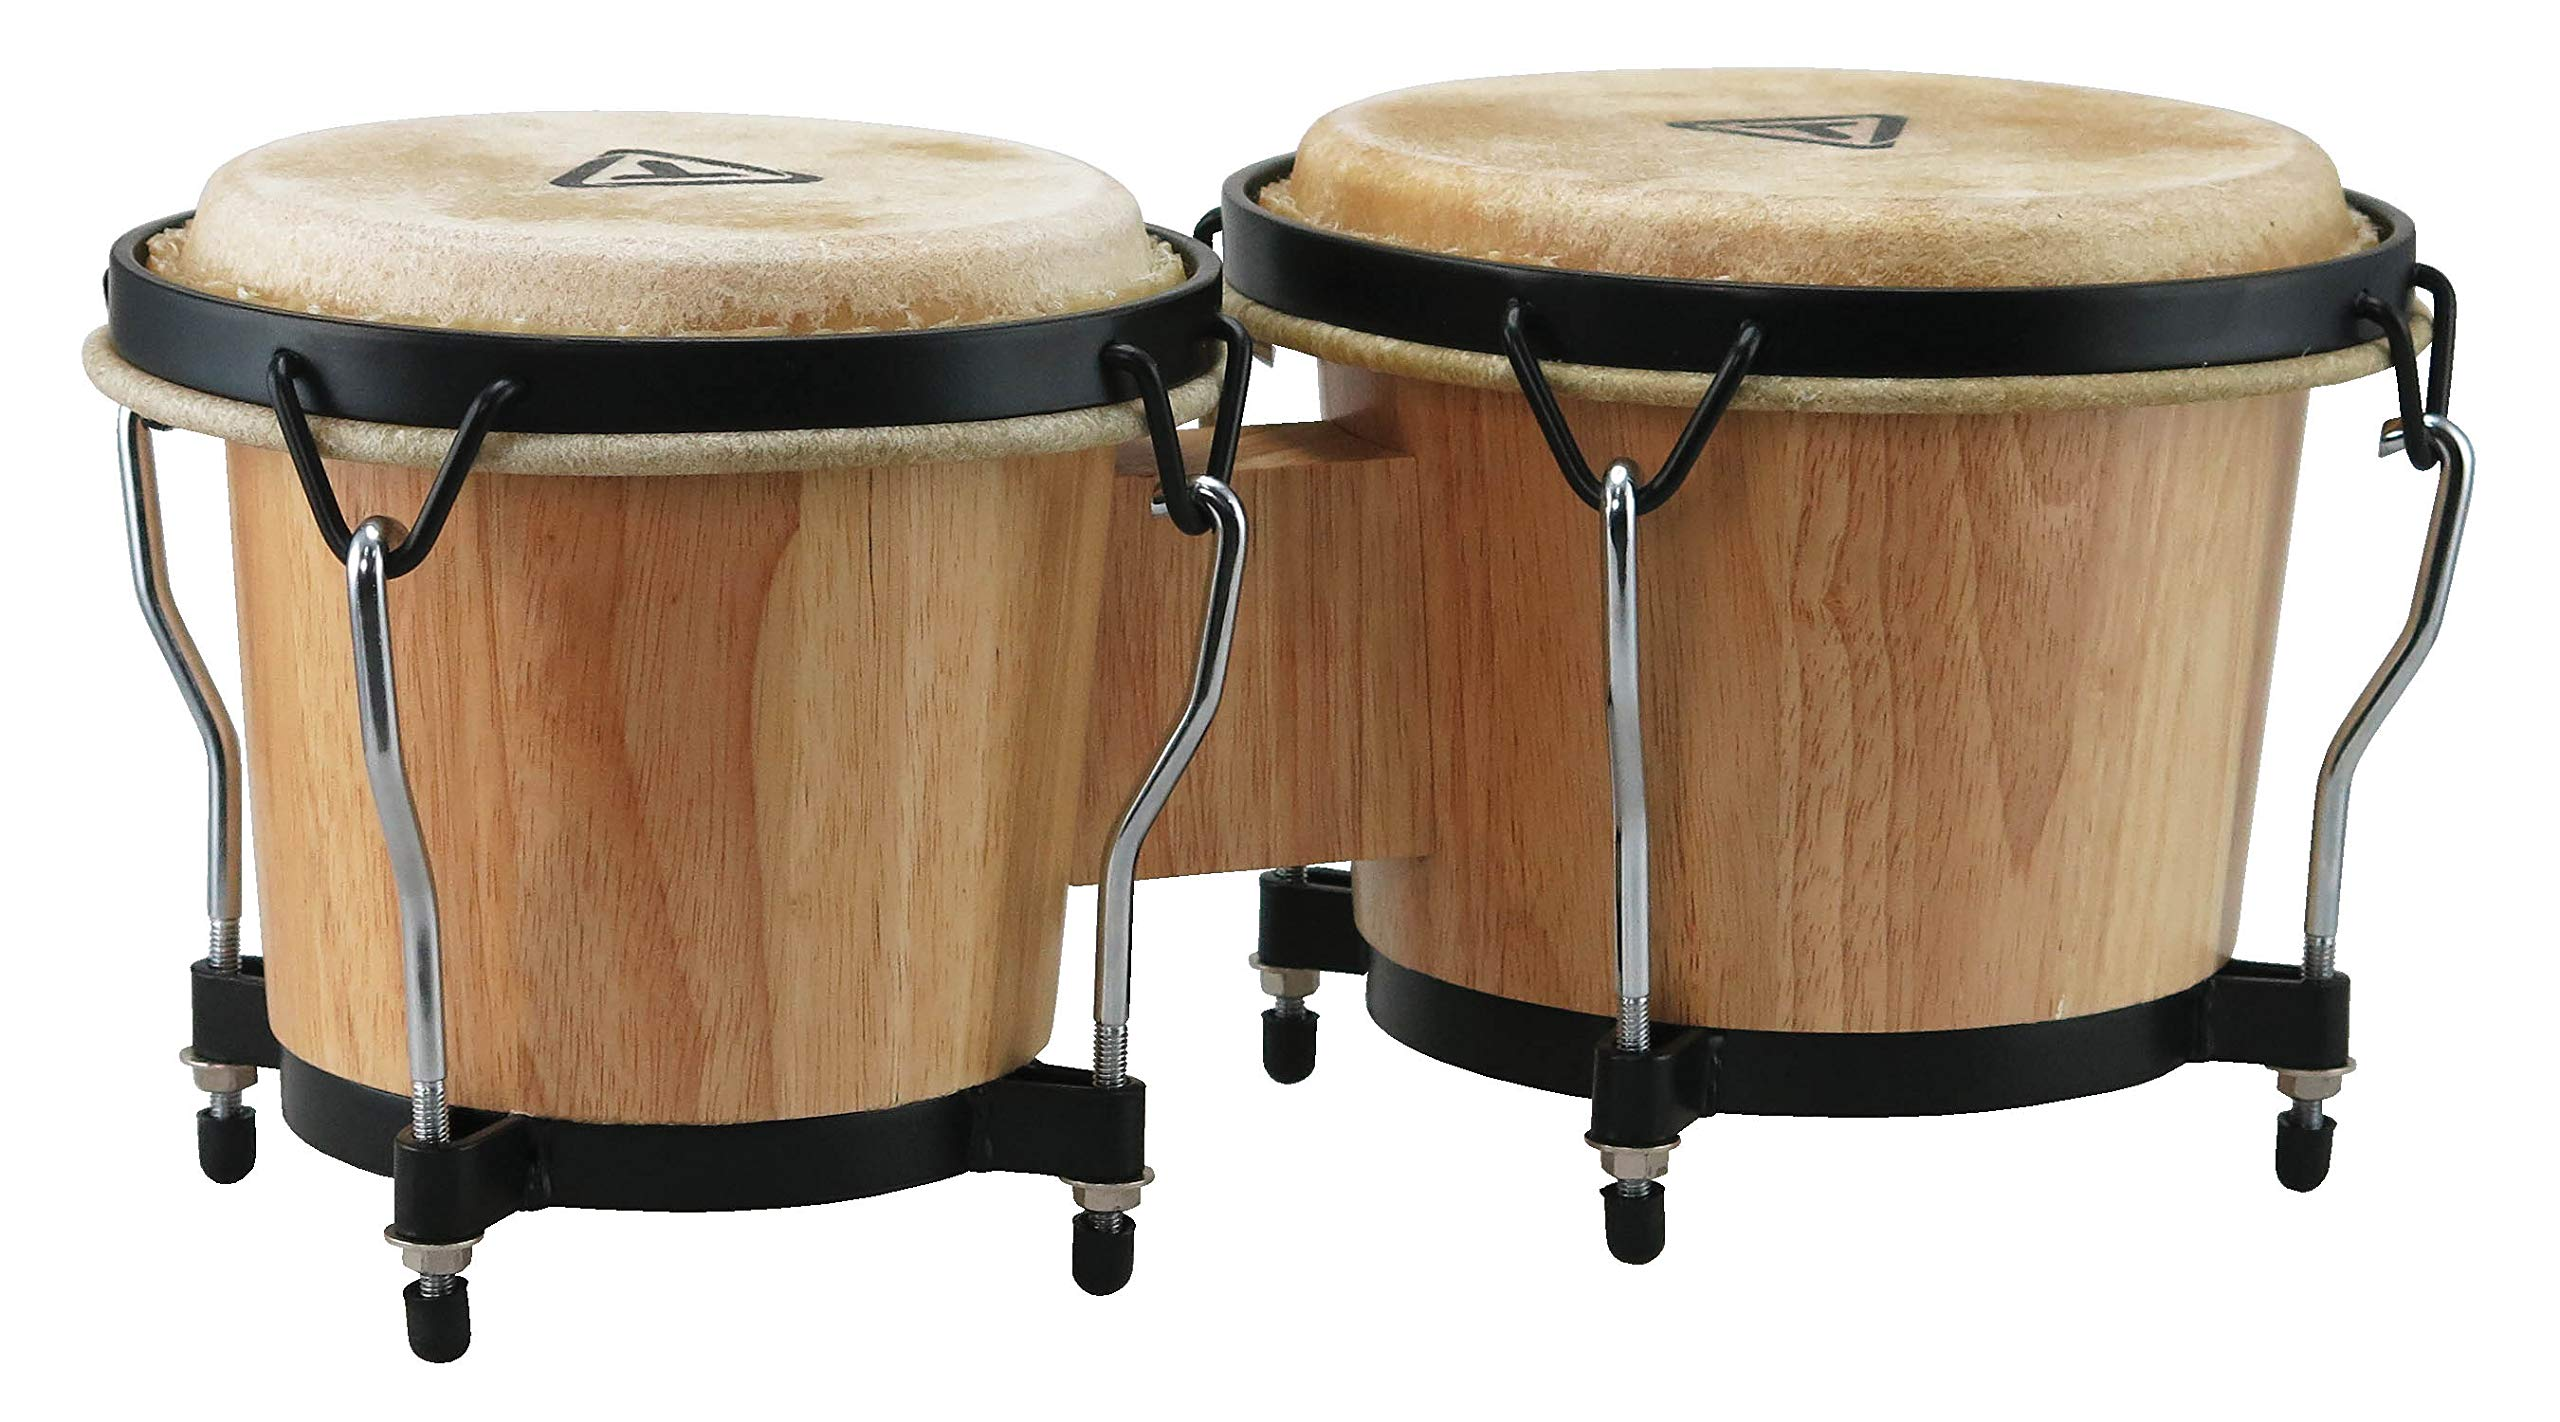 Tycoon Percussion 6 Inch & 7 Inch Ritmo Bongos - Natural Finish